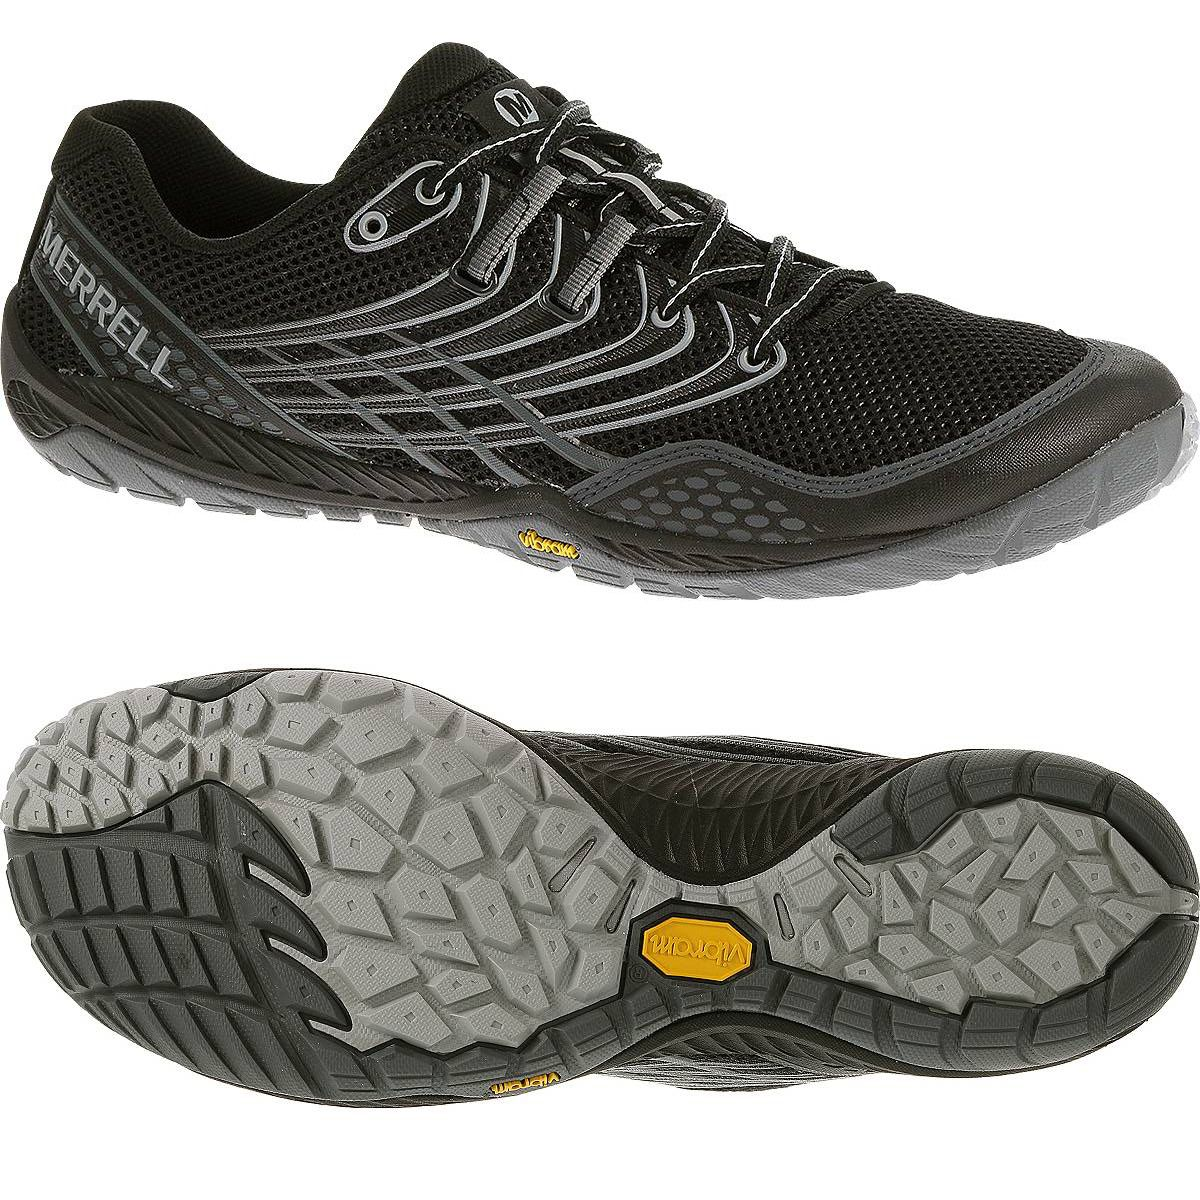 Merrell Black Running Shoes